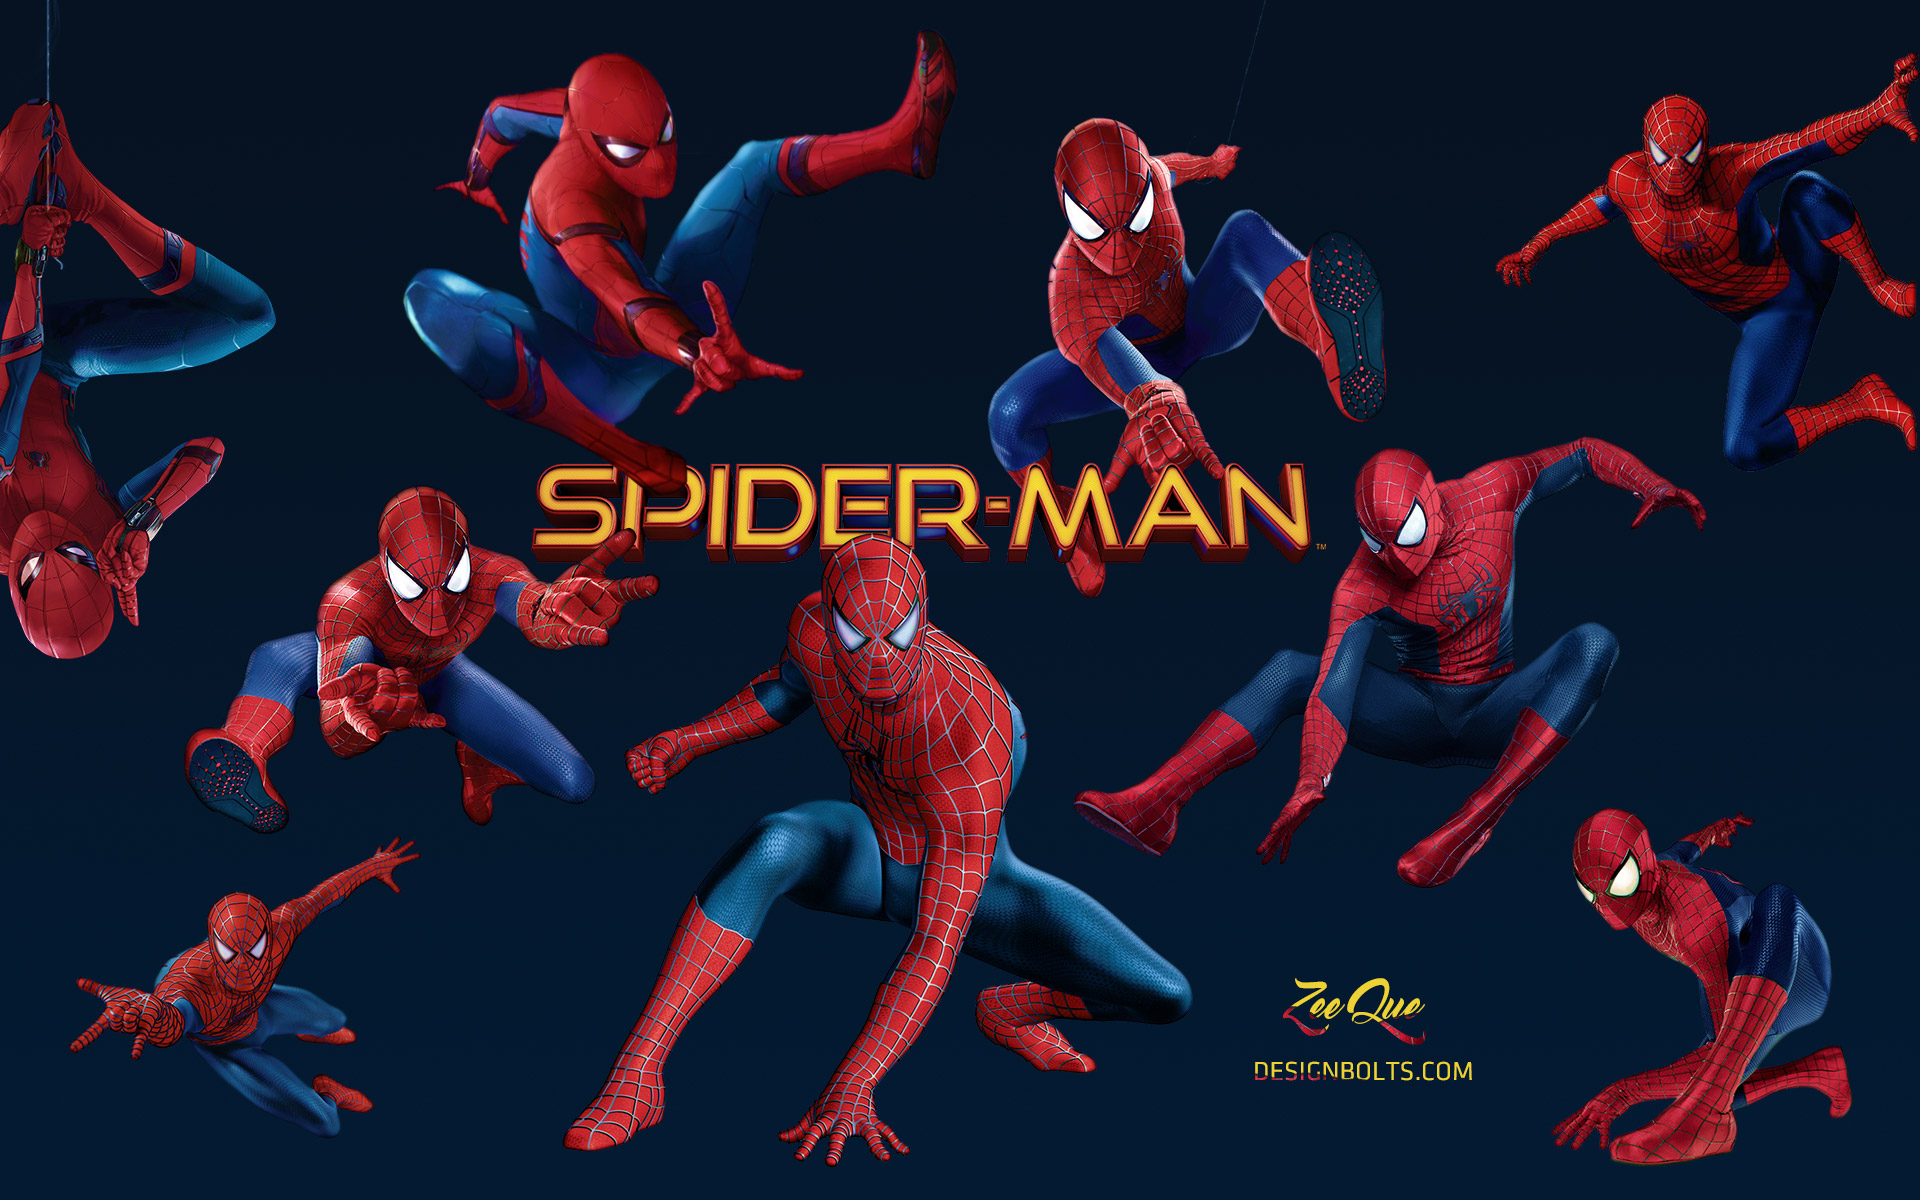 Spider Man Homecoming Wallpaper HD 1920 X 1080